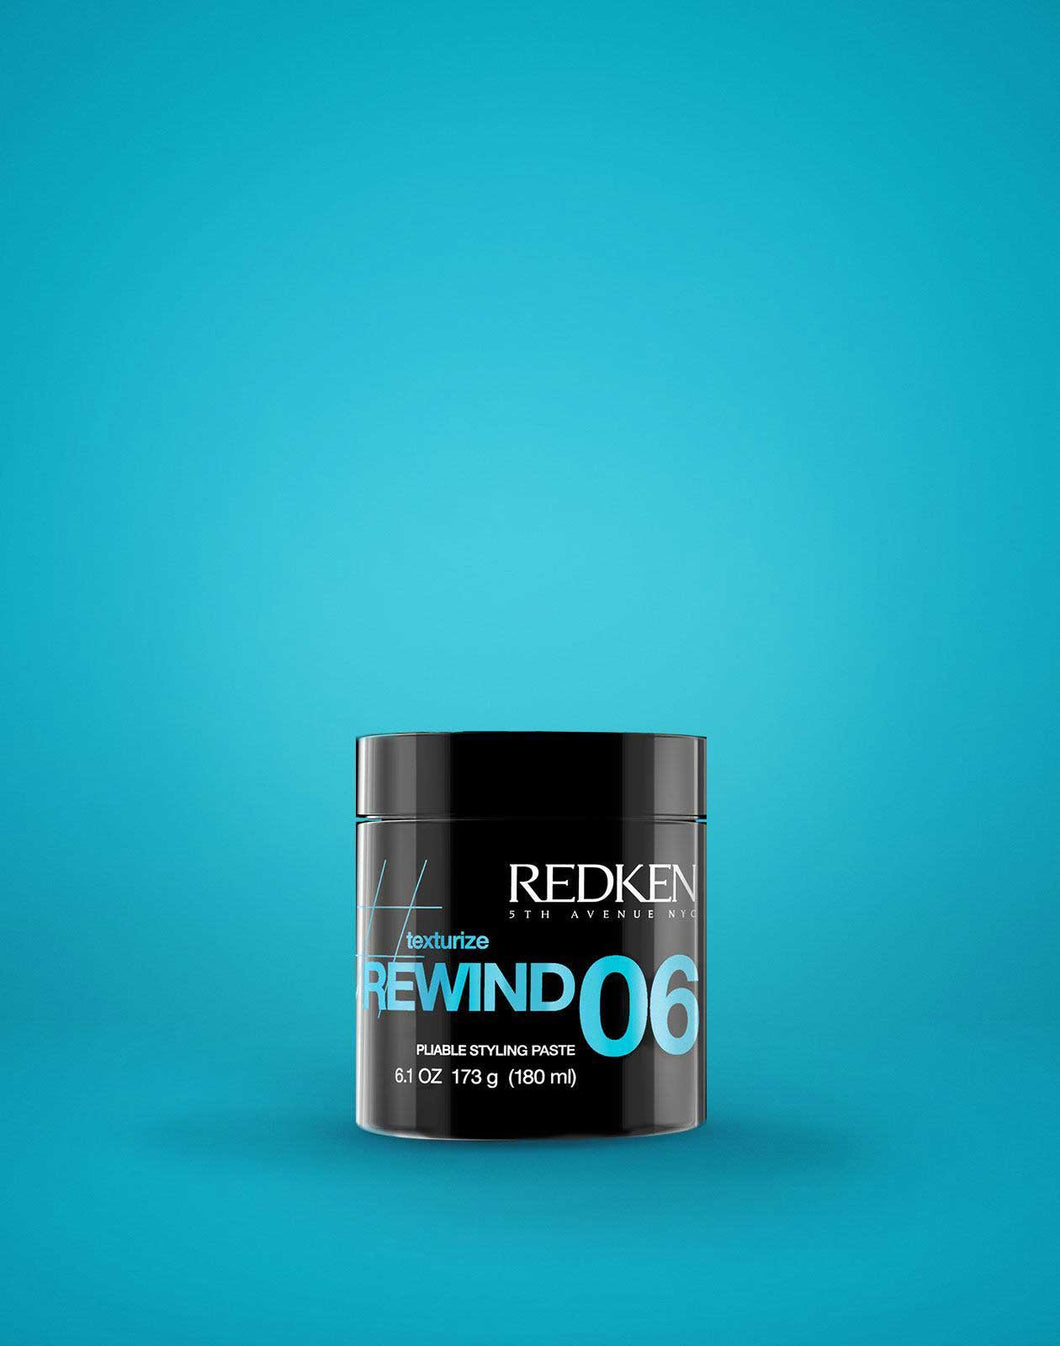 REWIND 06 PLIABLE STYLING PASTE by Redken - The Color Studio & Salon